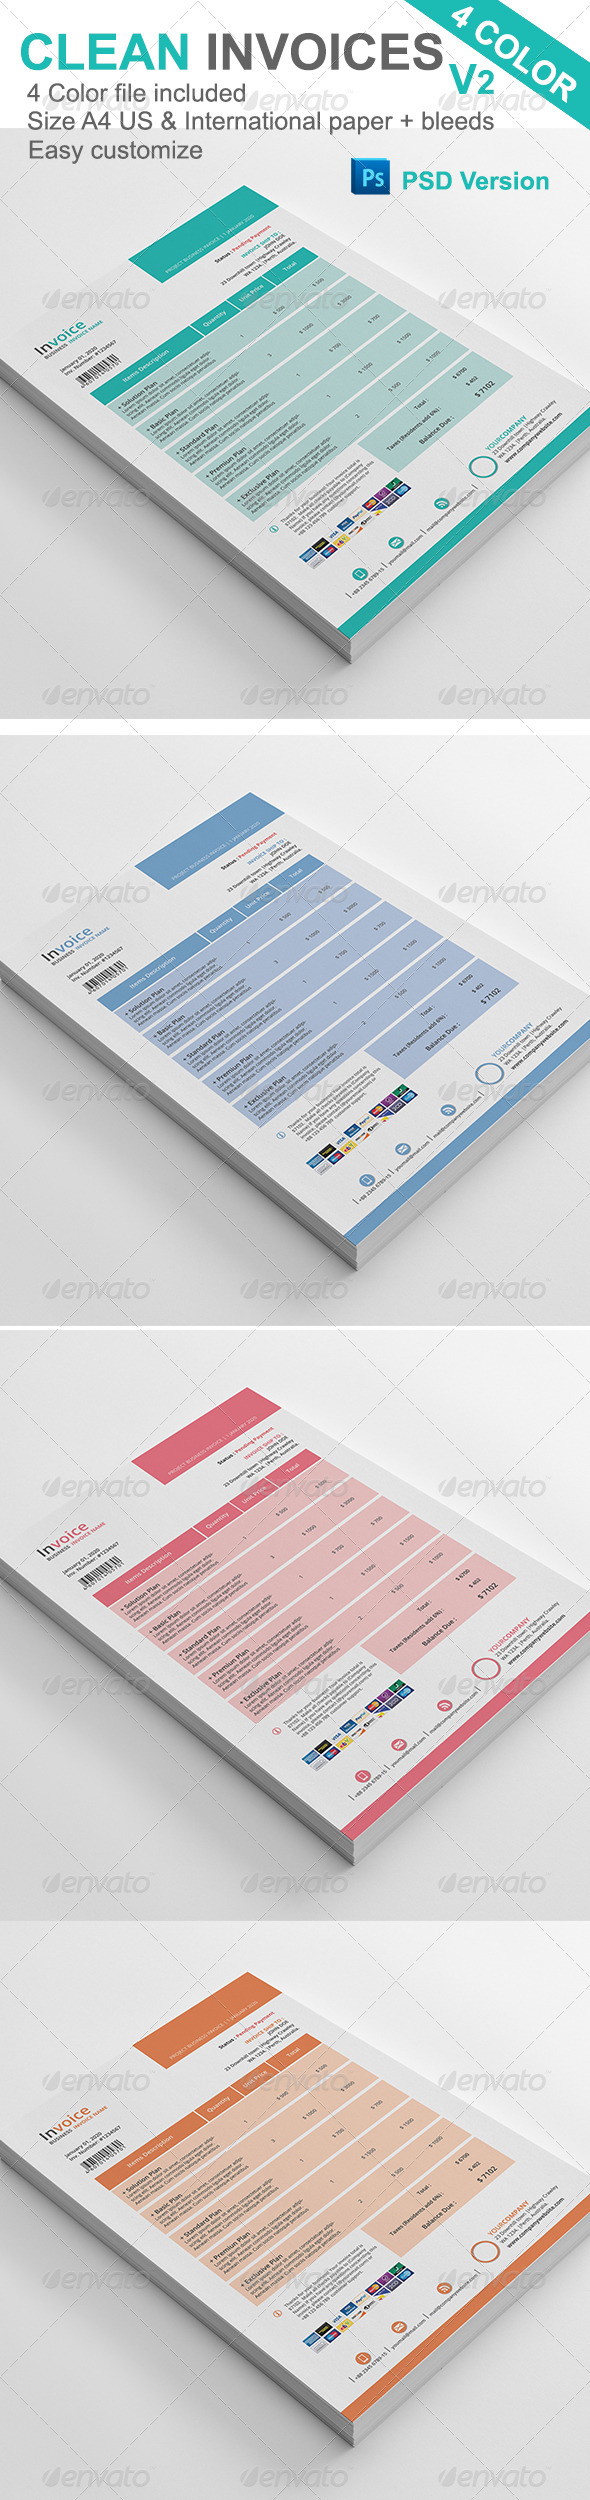 GraphicRiver Gstudio Clean Invoices Template V2 3997890